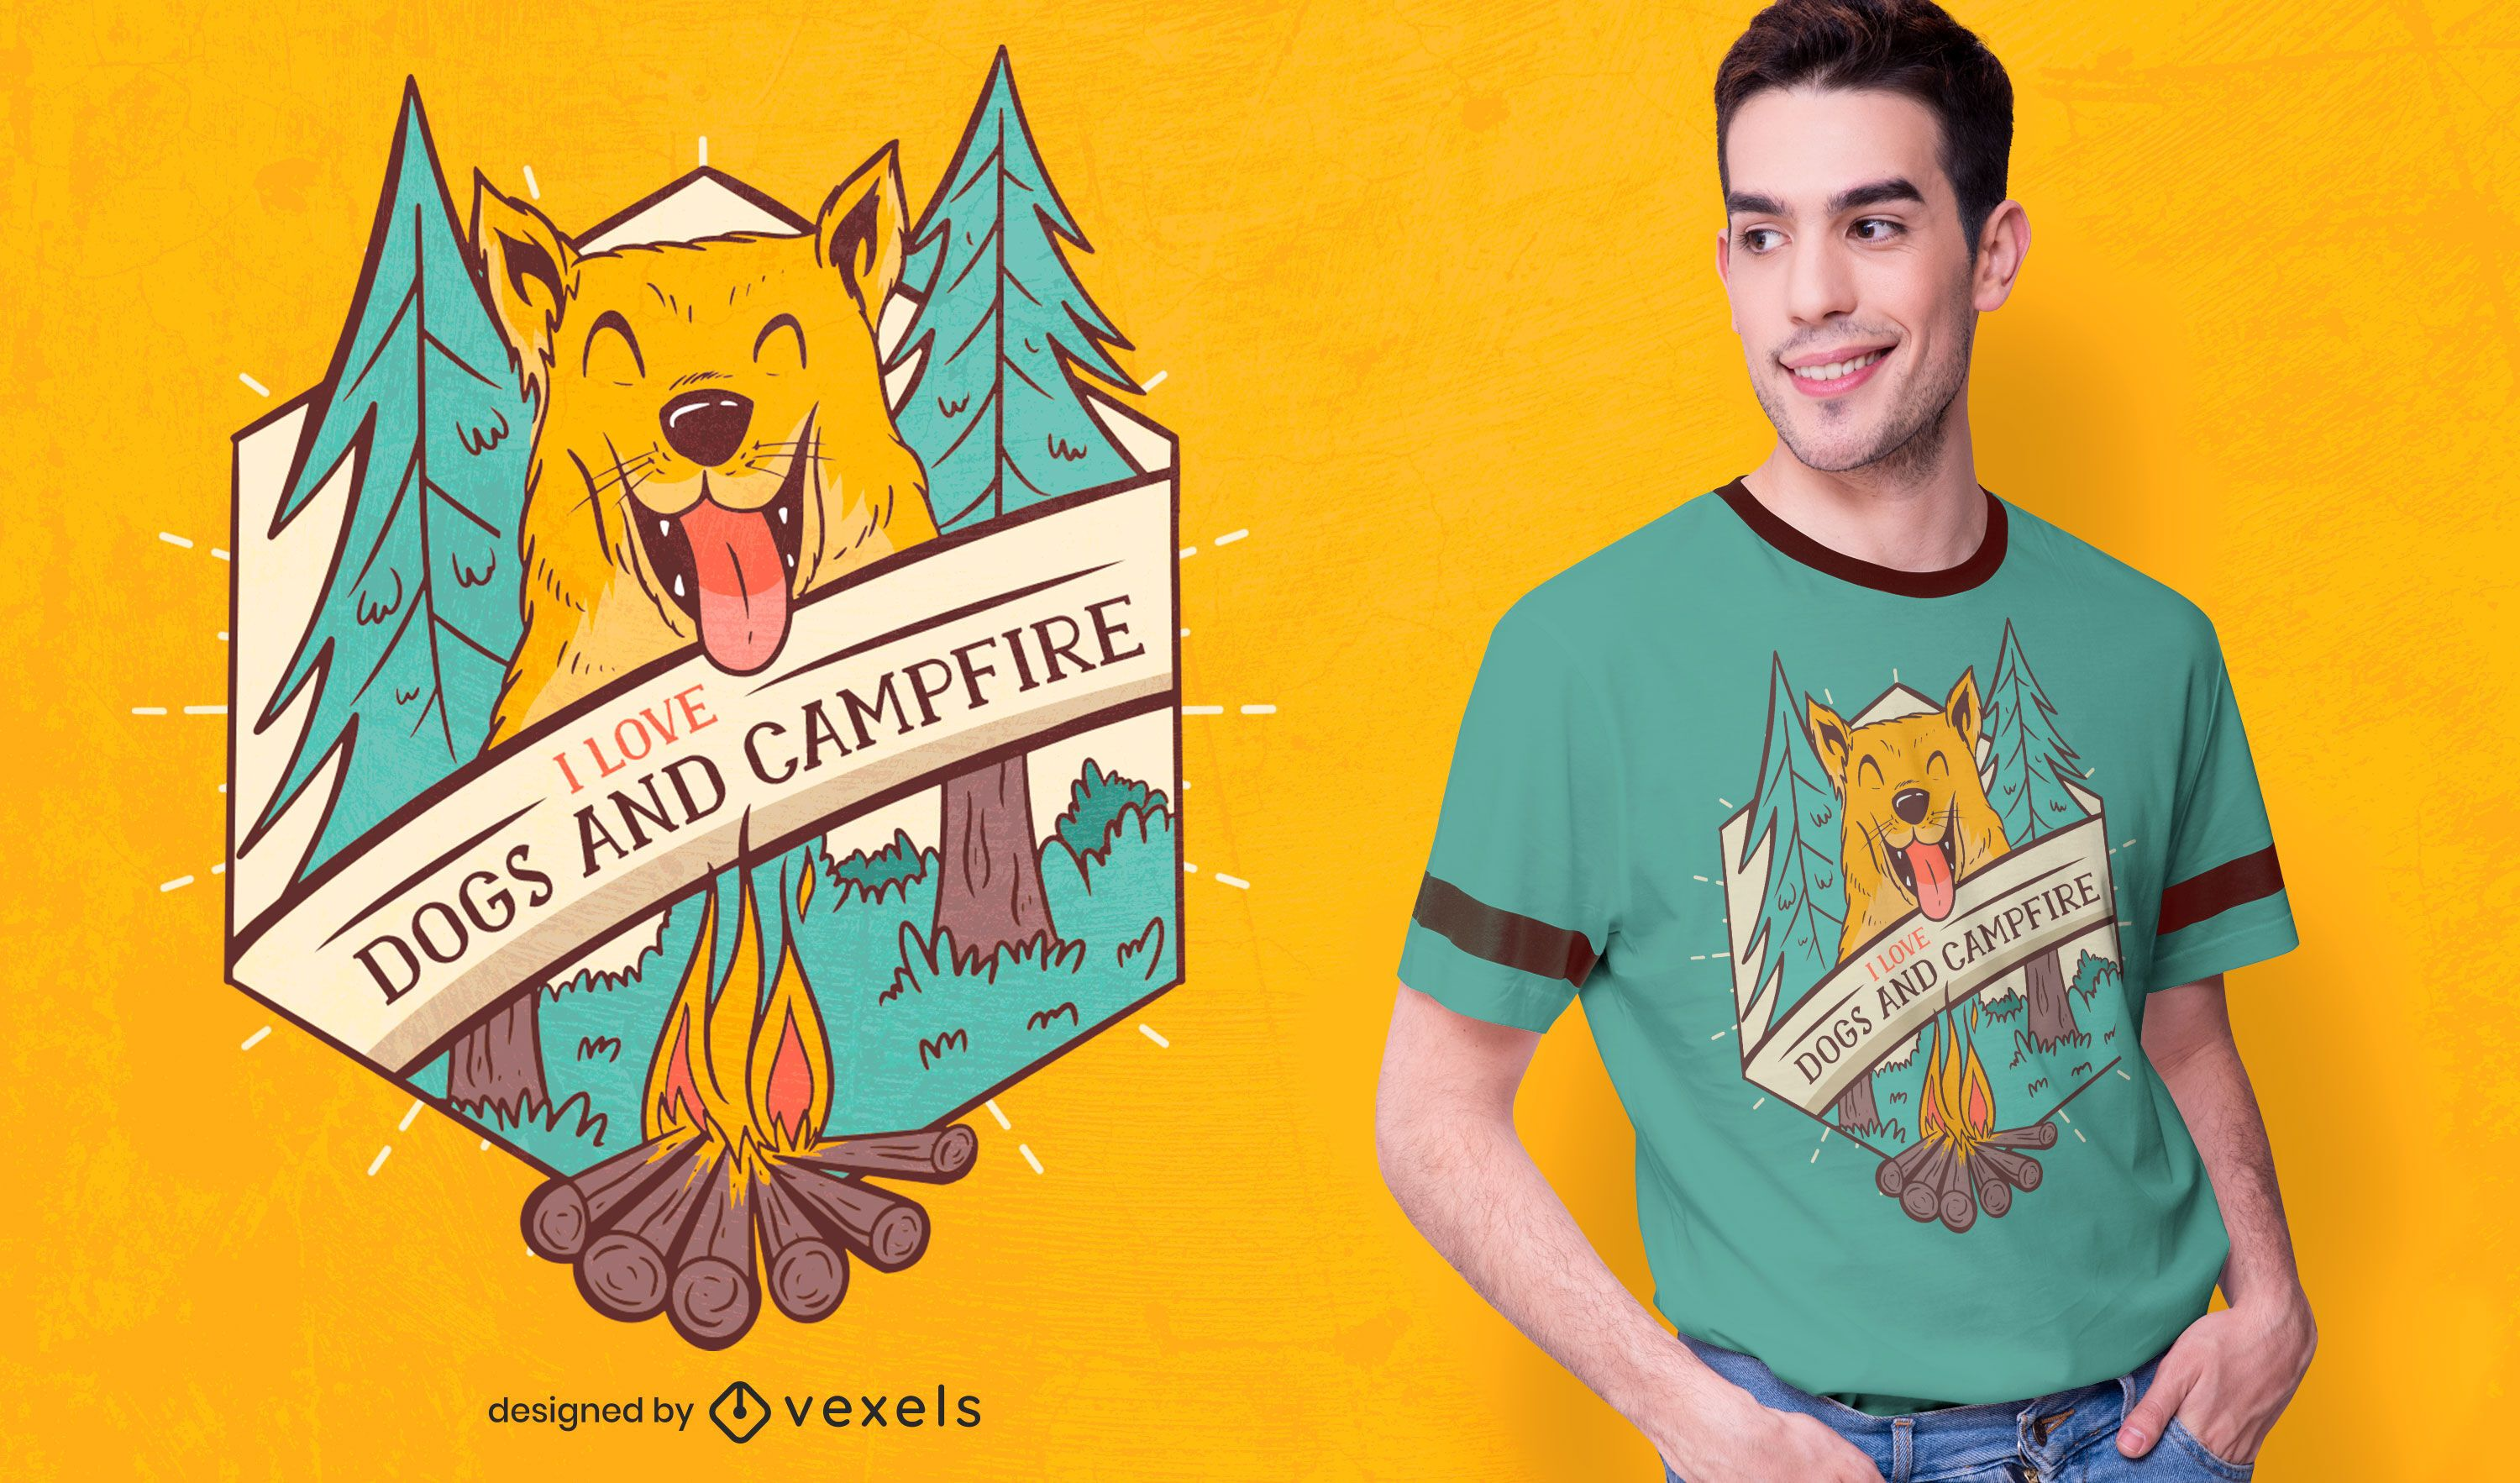 Dogs and campfire t-shirt design